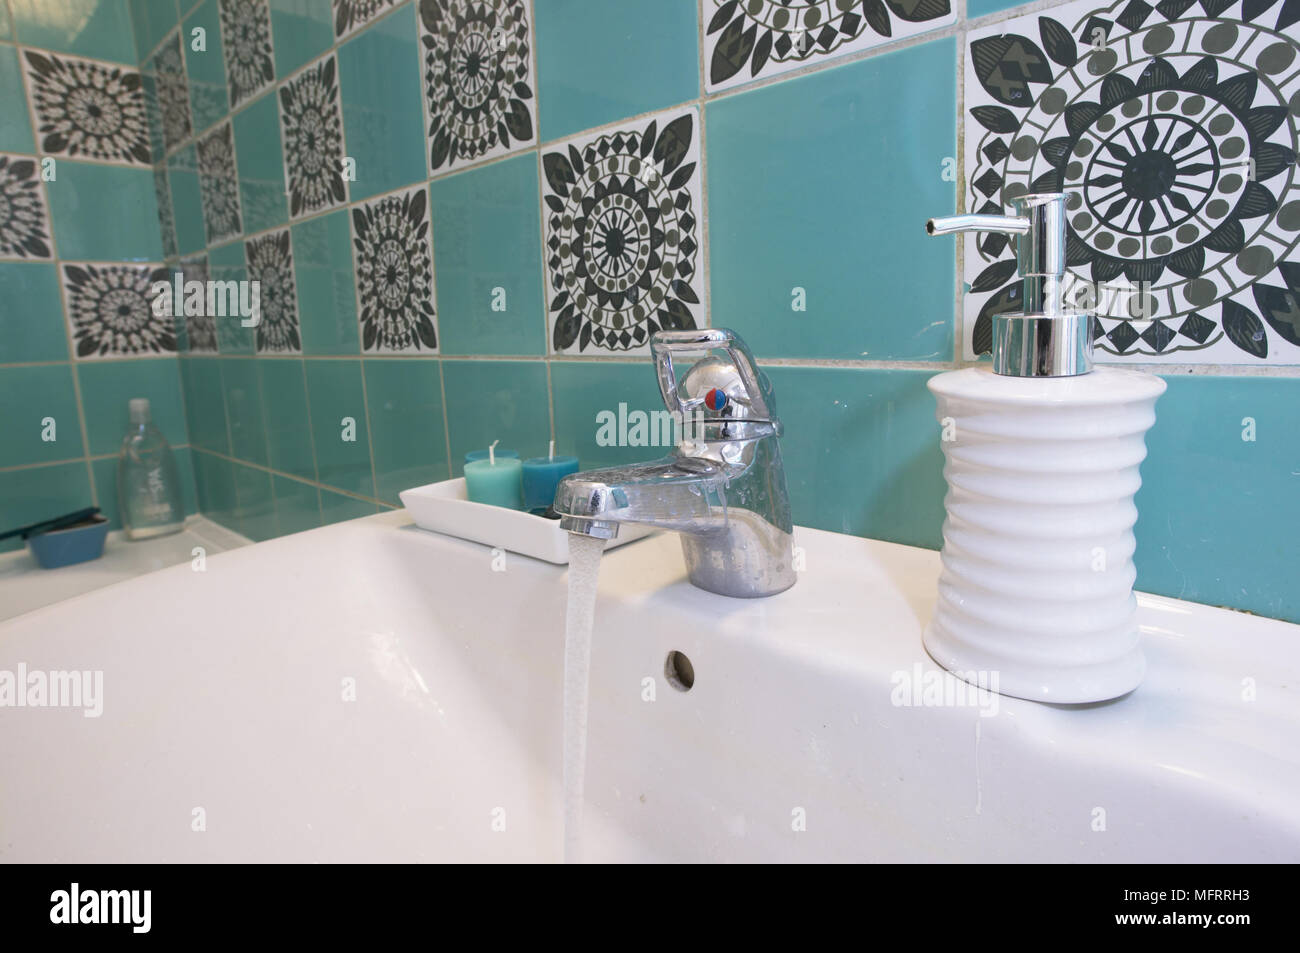 Porcelain wash basin with soap holder and decorative tiled wall ...